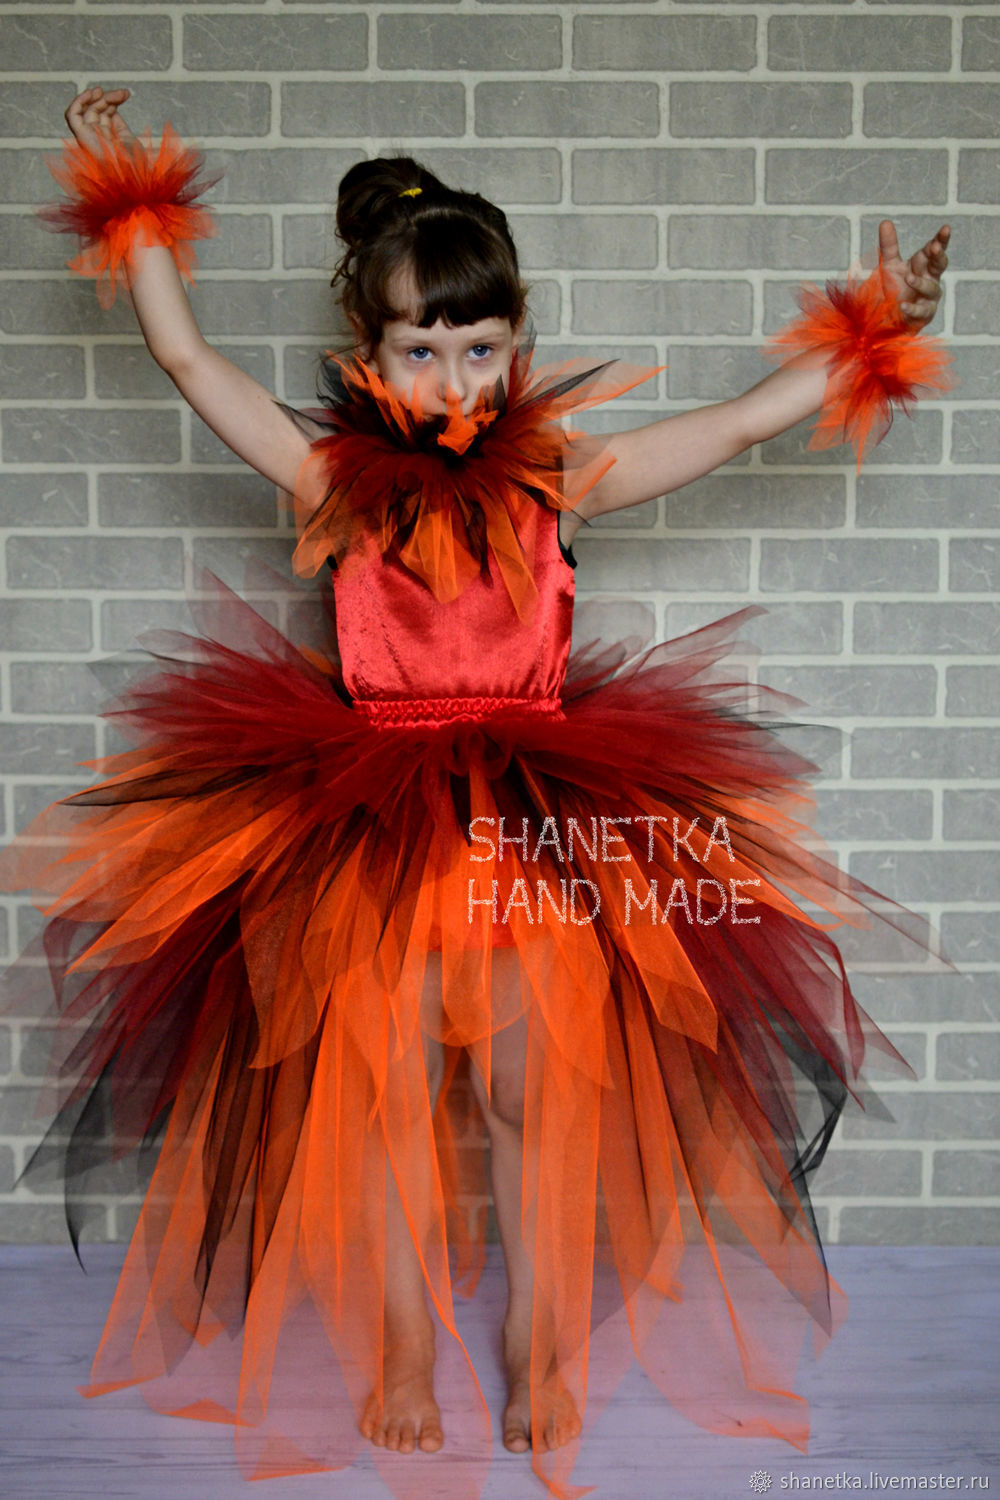 What to do if the child does not want to wear a carnival costume